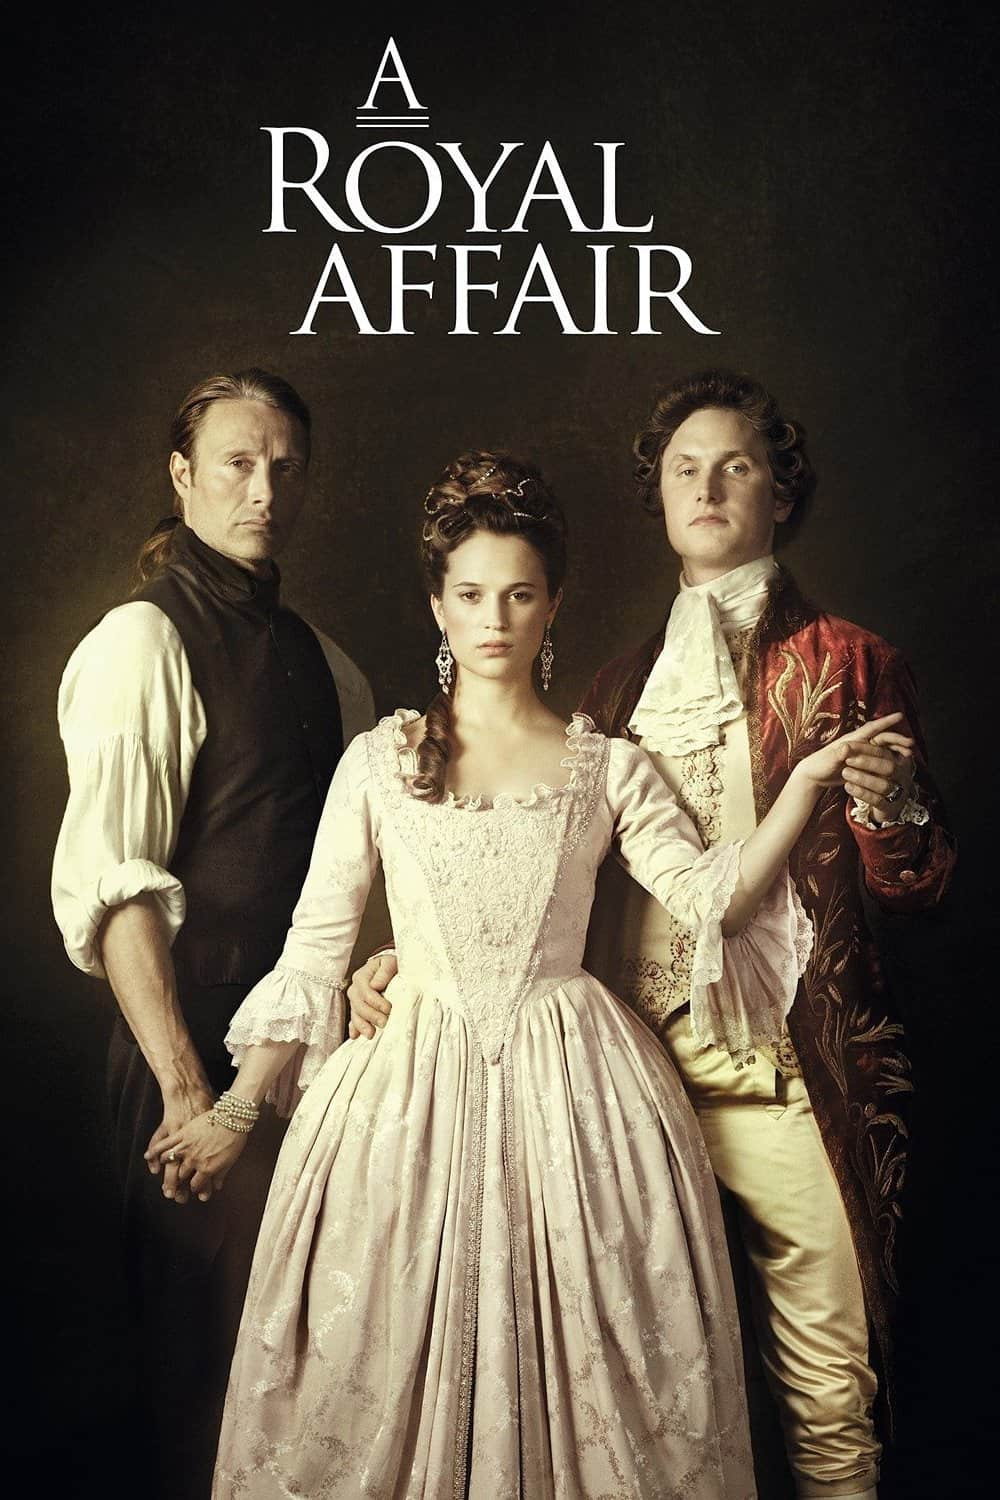 A Royal Affair, 2012